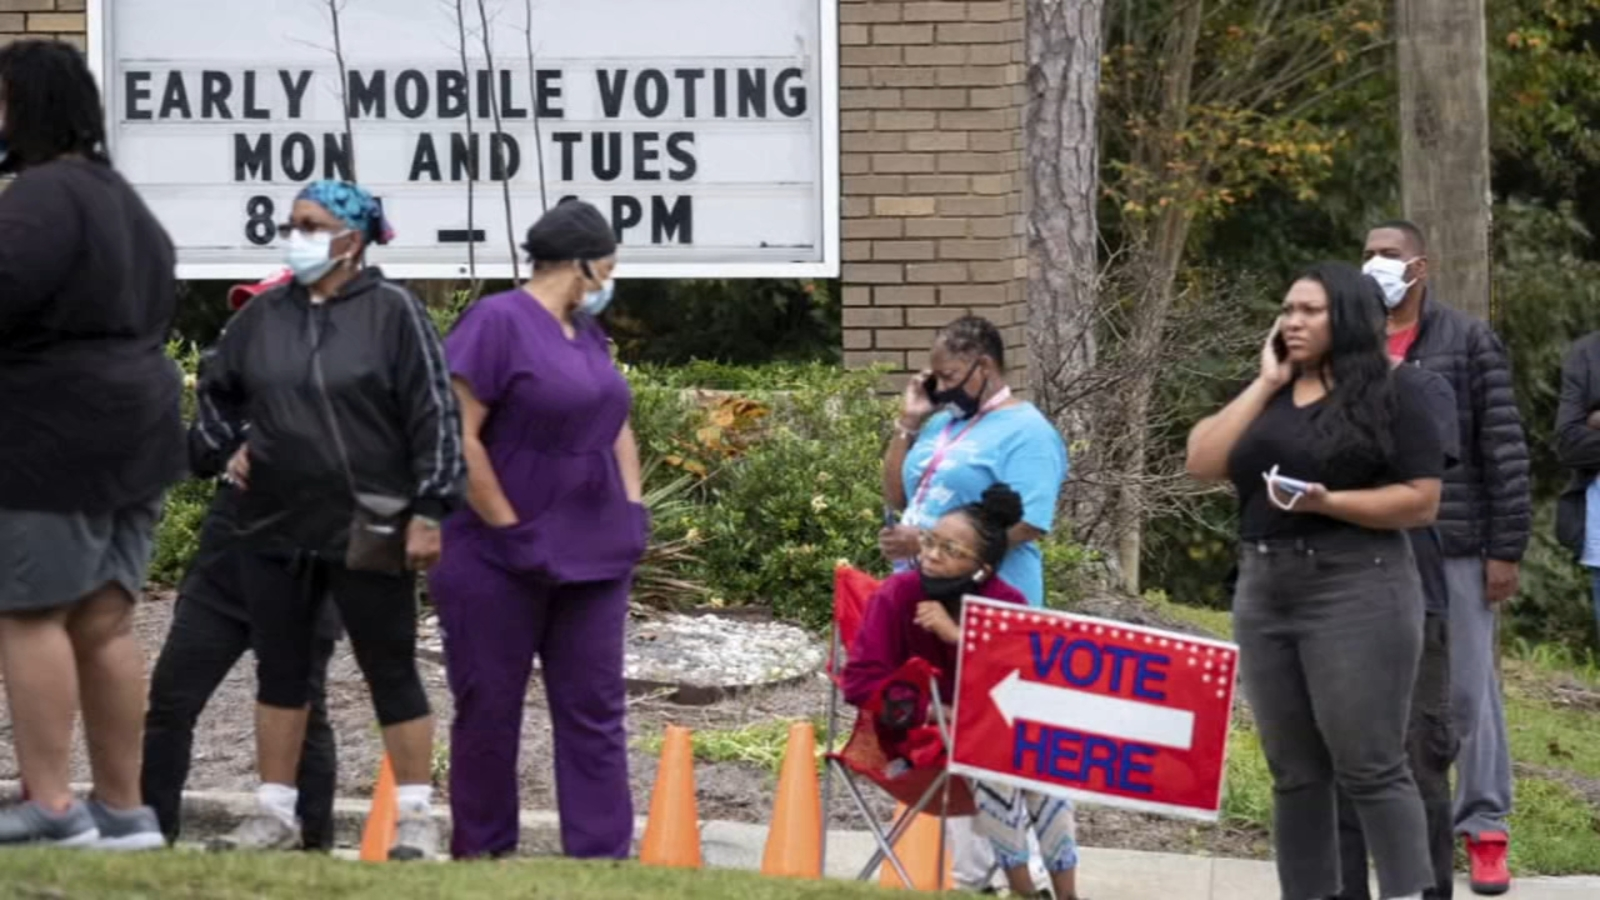 Wisconsin audit finds elections 'safe and secure' after Republican voter fraud concerns